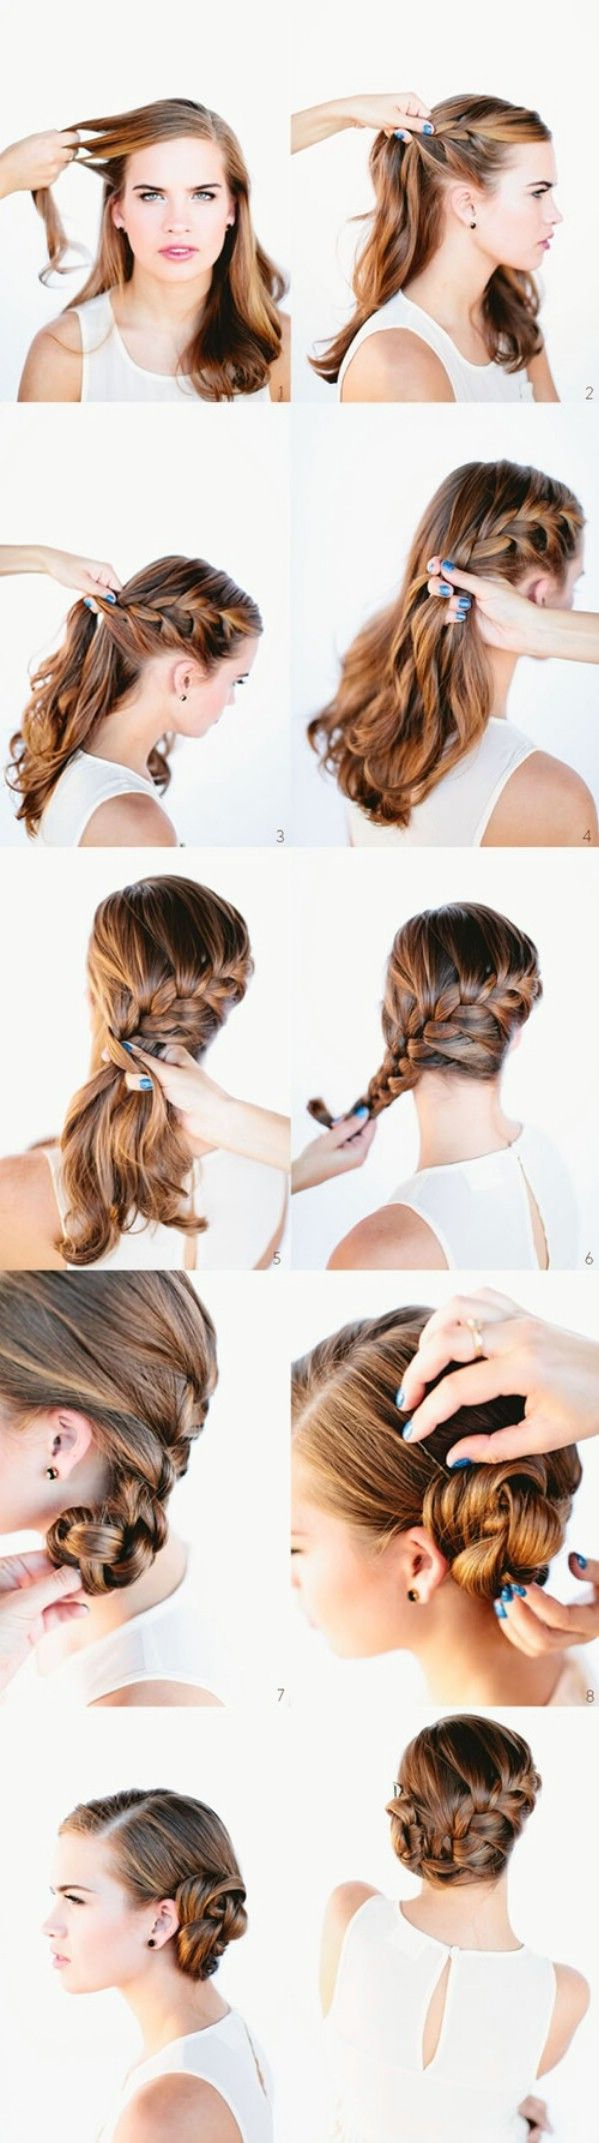 easiest updo that looks polished for work, going out on a date, or even to the symphony. My go to updo when nothing is going right!  Someone please do my hair like this. <3 For my Kate